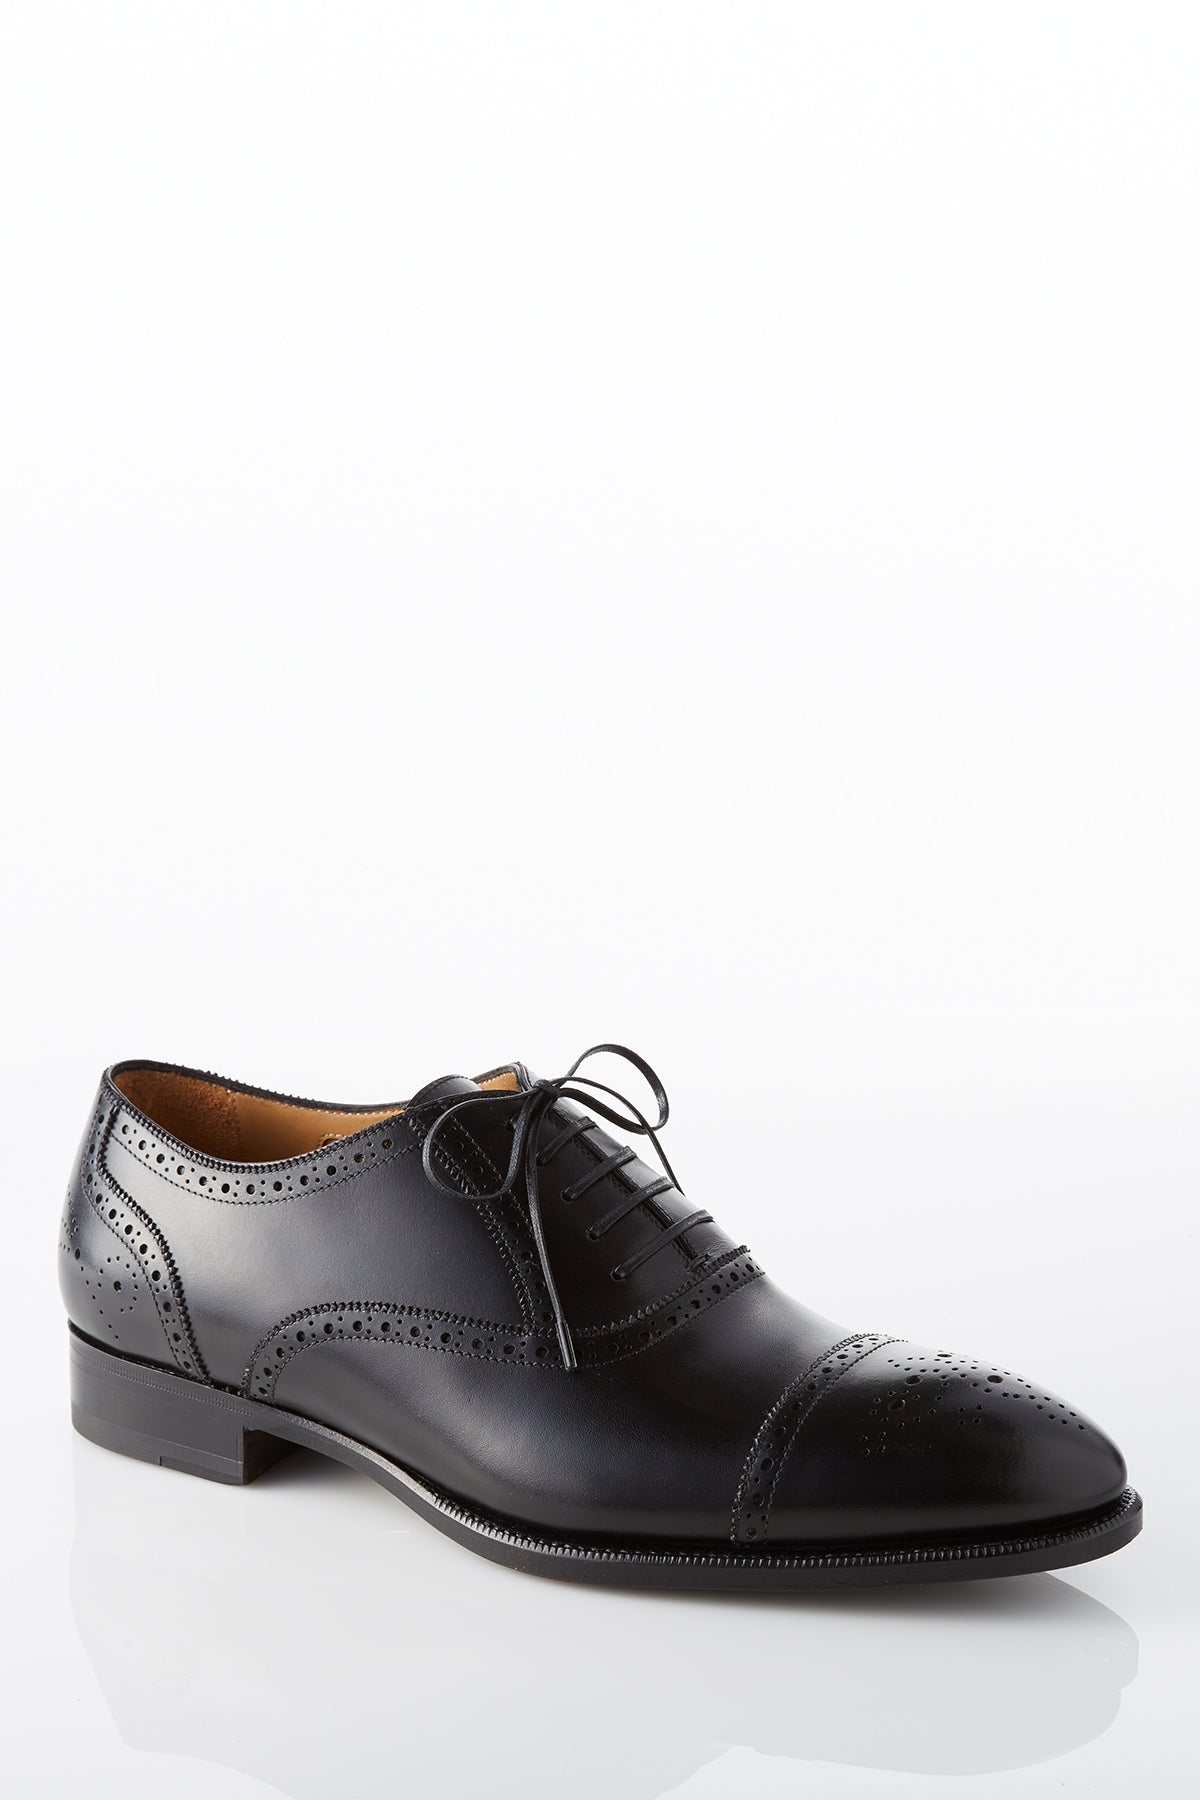 David August Di Bianco Leather Brogue Oxford in Black